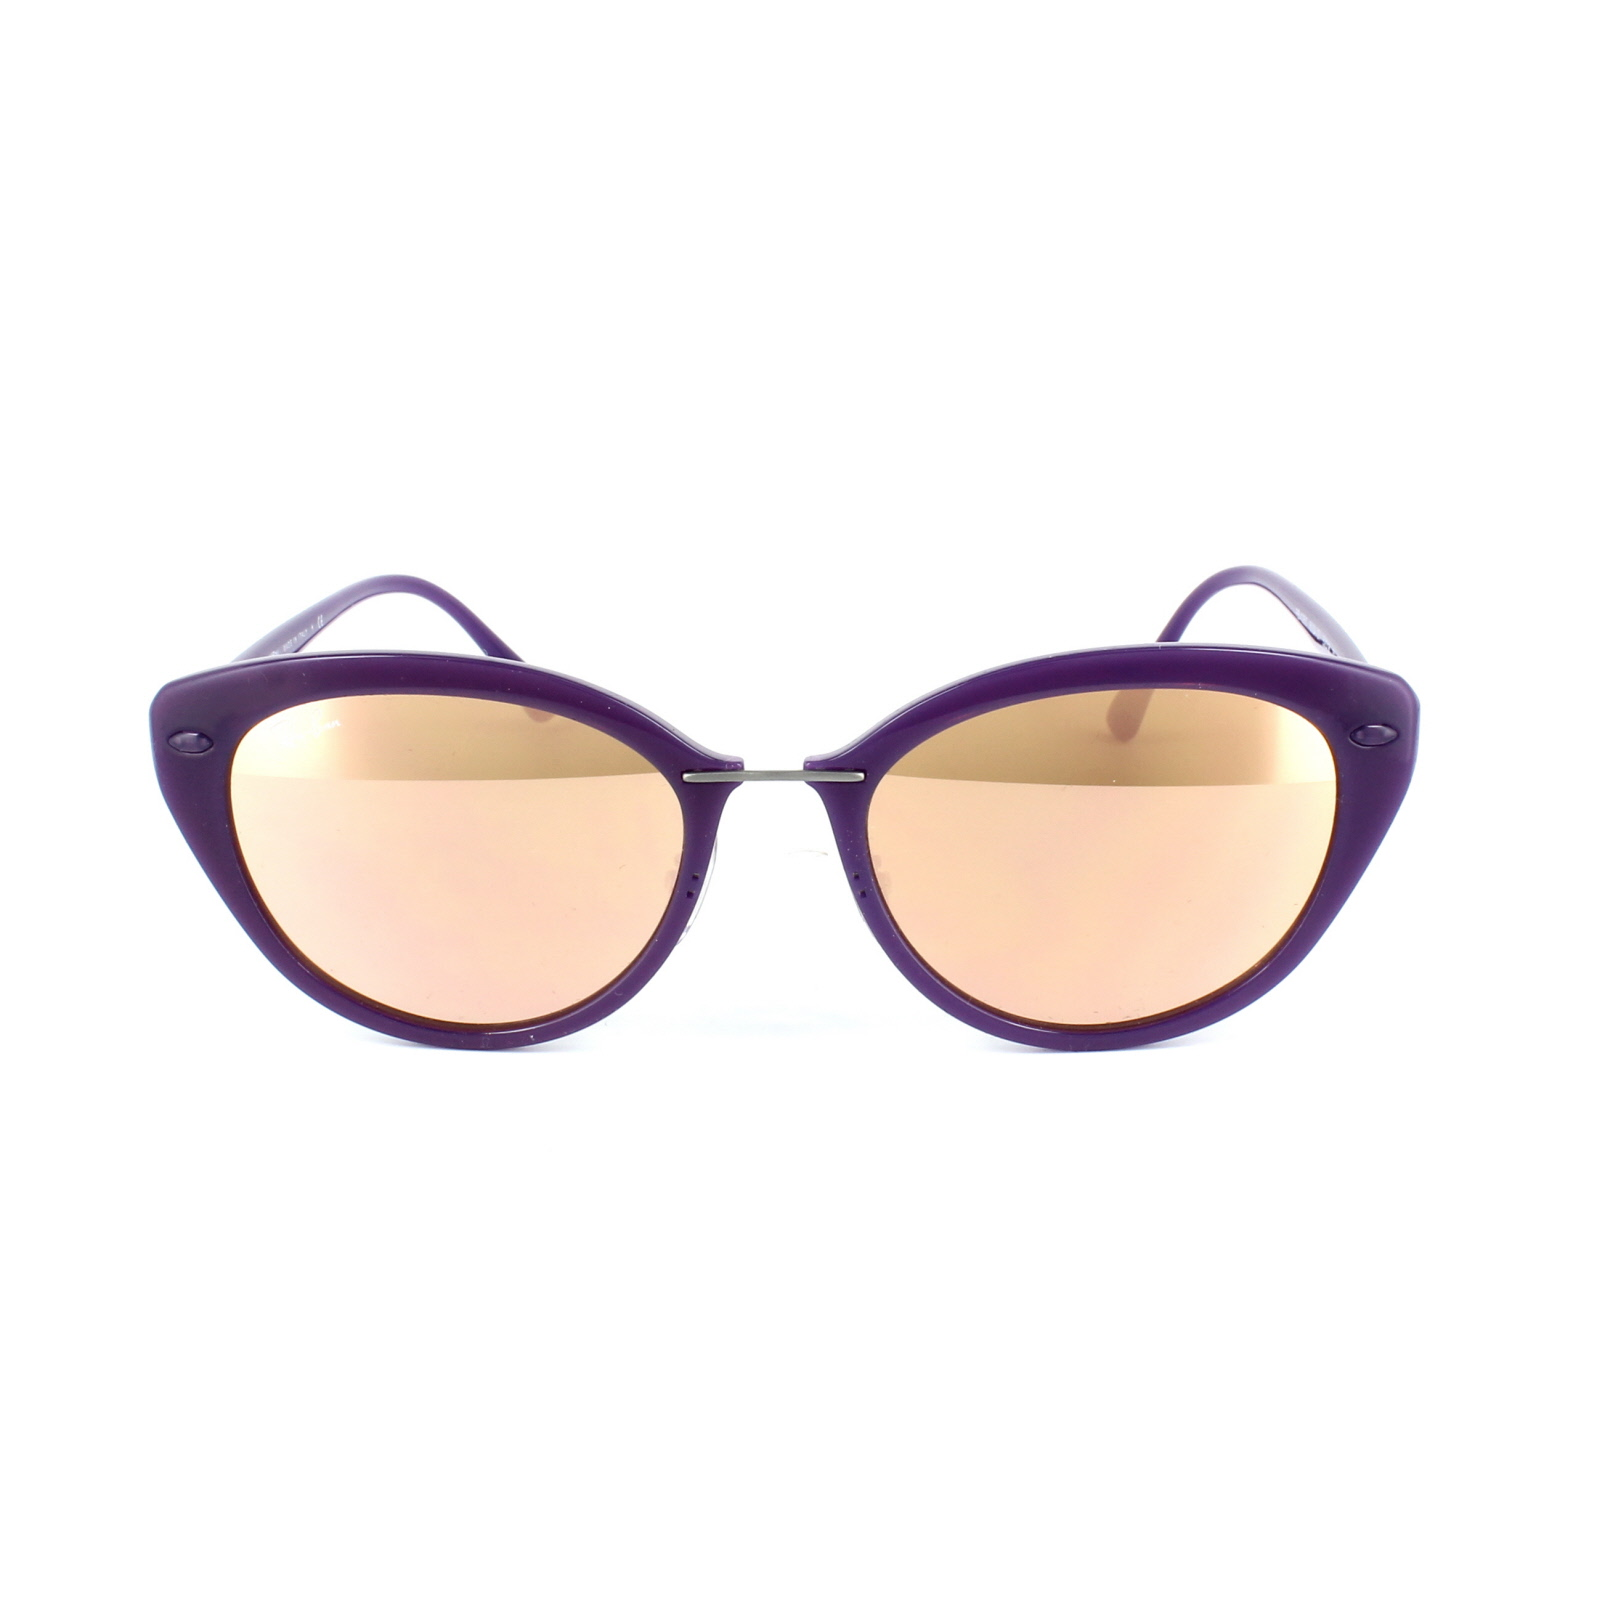 c0797516b0e Ray-Ban Sunglasses 4250 60342Y Violet Copper Mirror 8053672573398